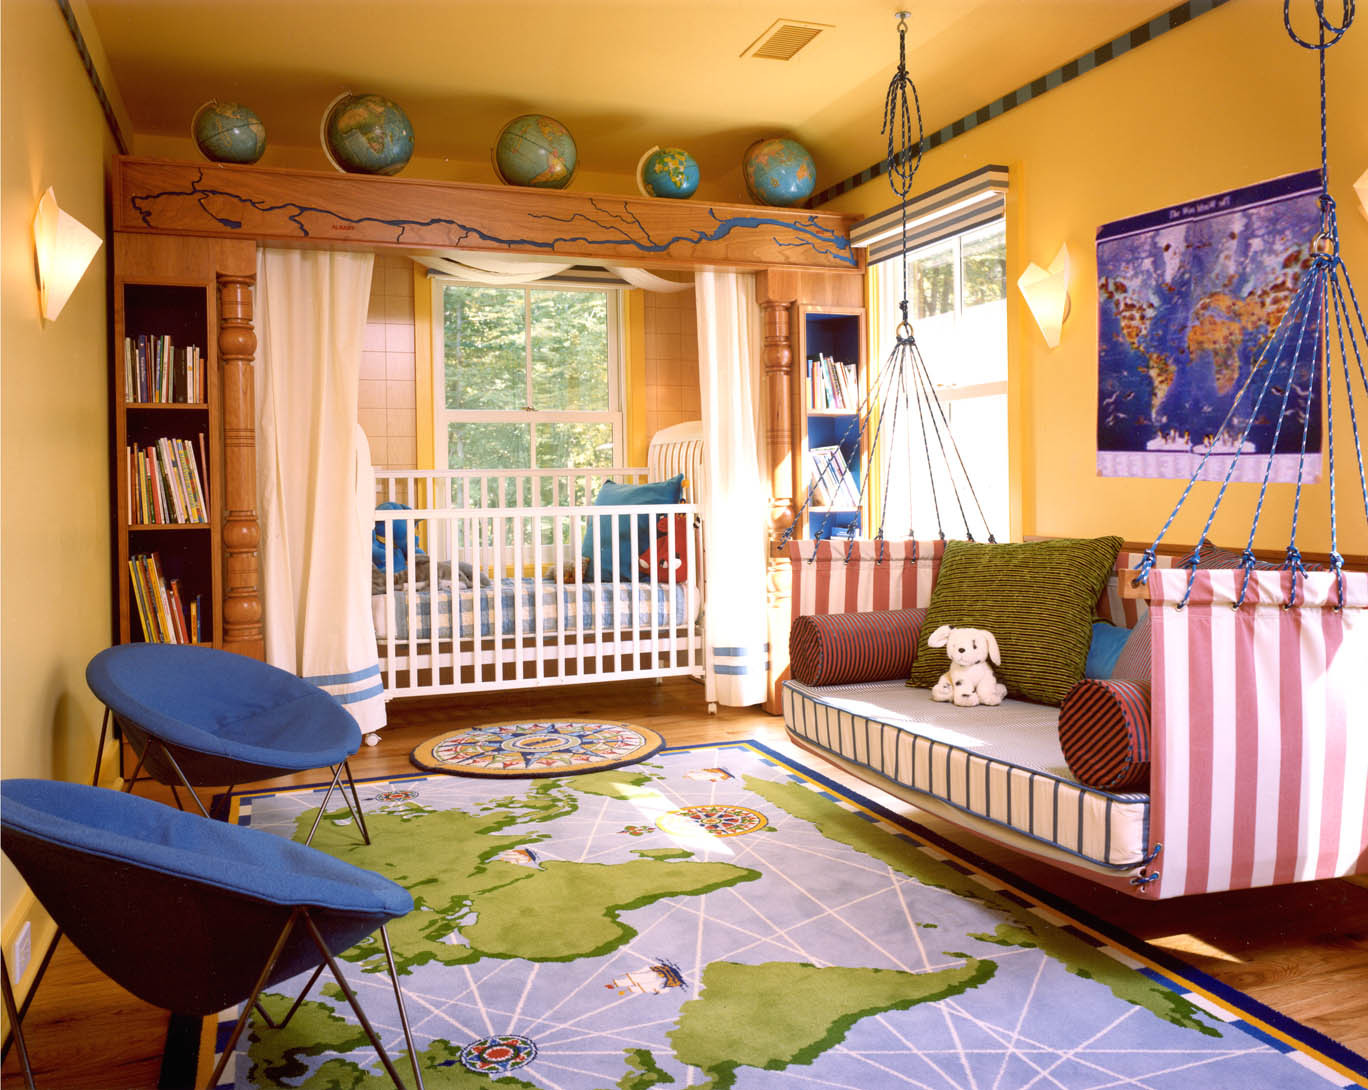 Best ideas about Kids Room Ideas . Save or Pin 15 Nice Kids Room Decor Ideas With Example Pics Now.